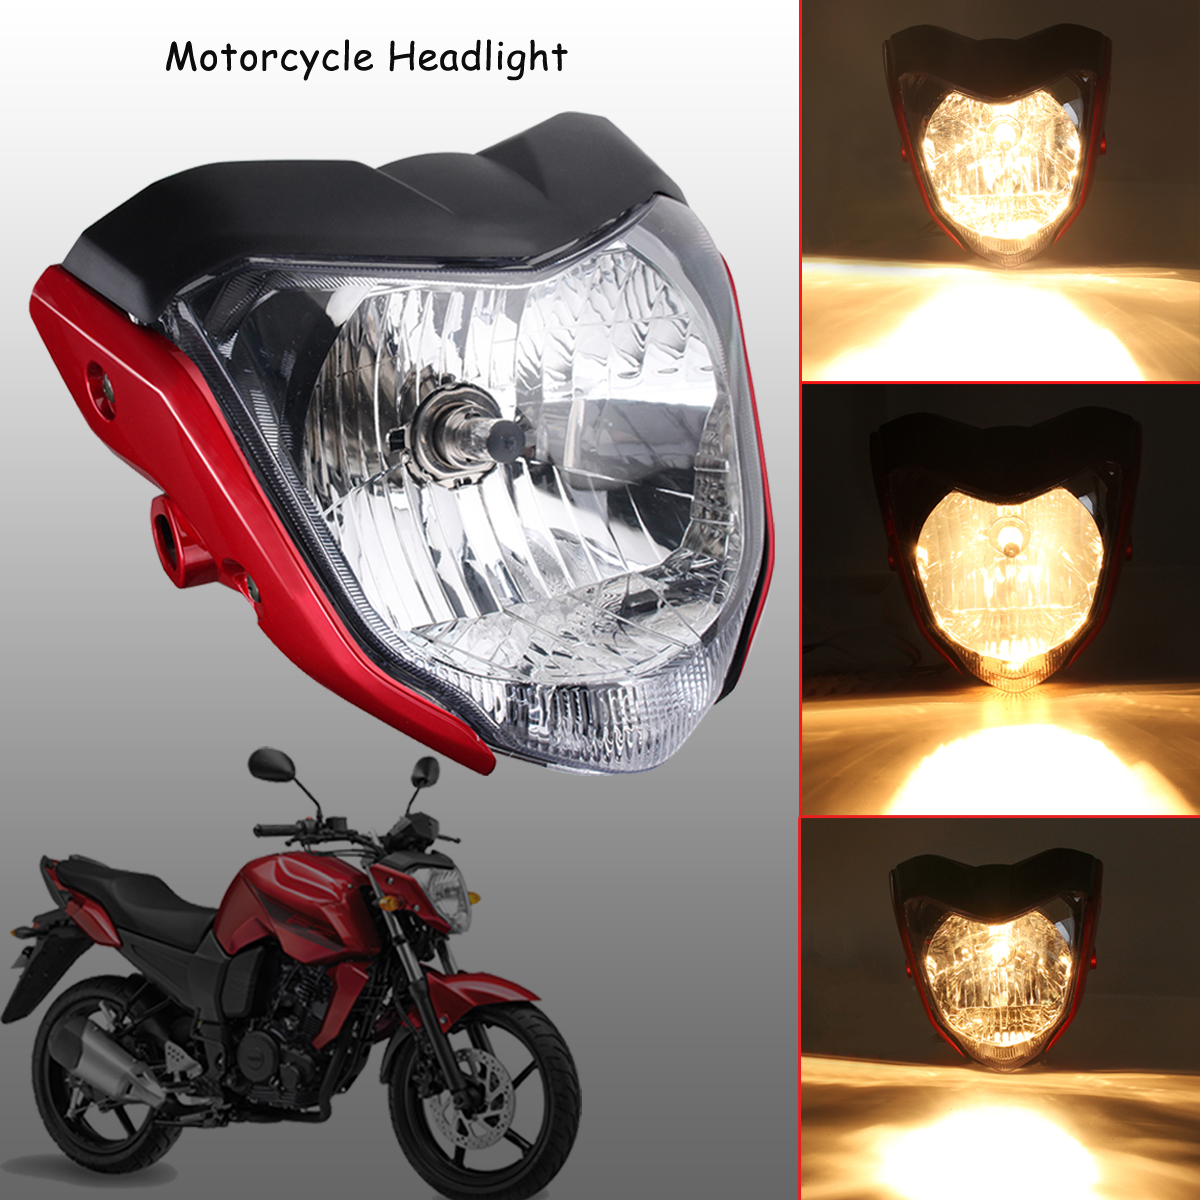 Motorcycle Tachometer Fz16 Speedometer New Abs Lcd Panel With Light Wiring Diagram Yamaha 1pcs Headlight Assembly Head Lamp House Red Fit For Ys150 Fzer150